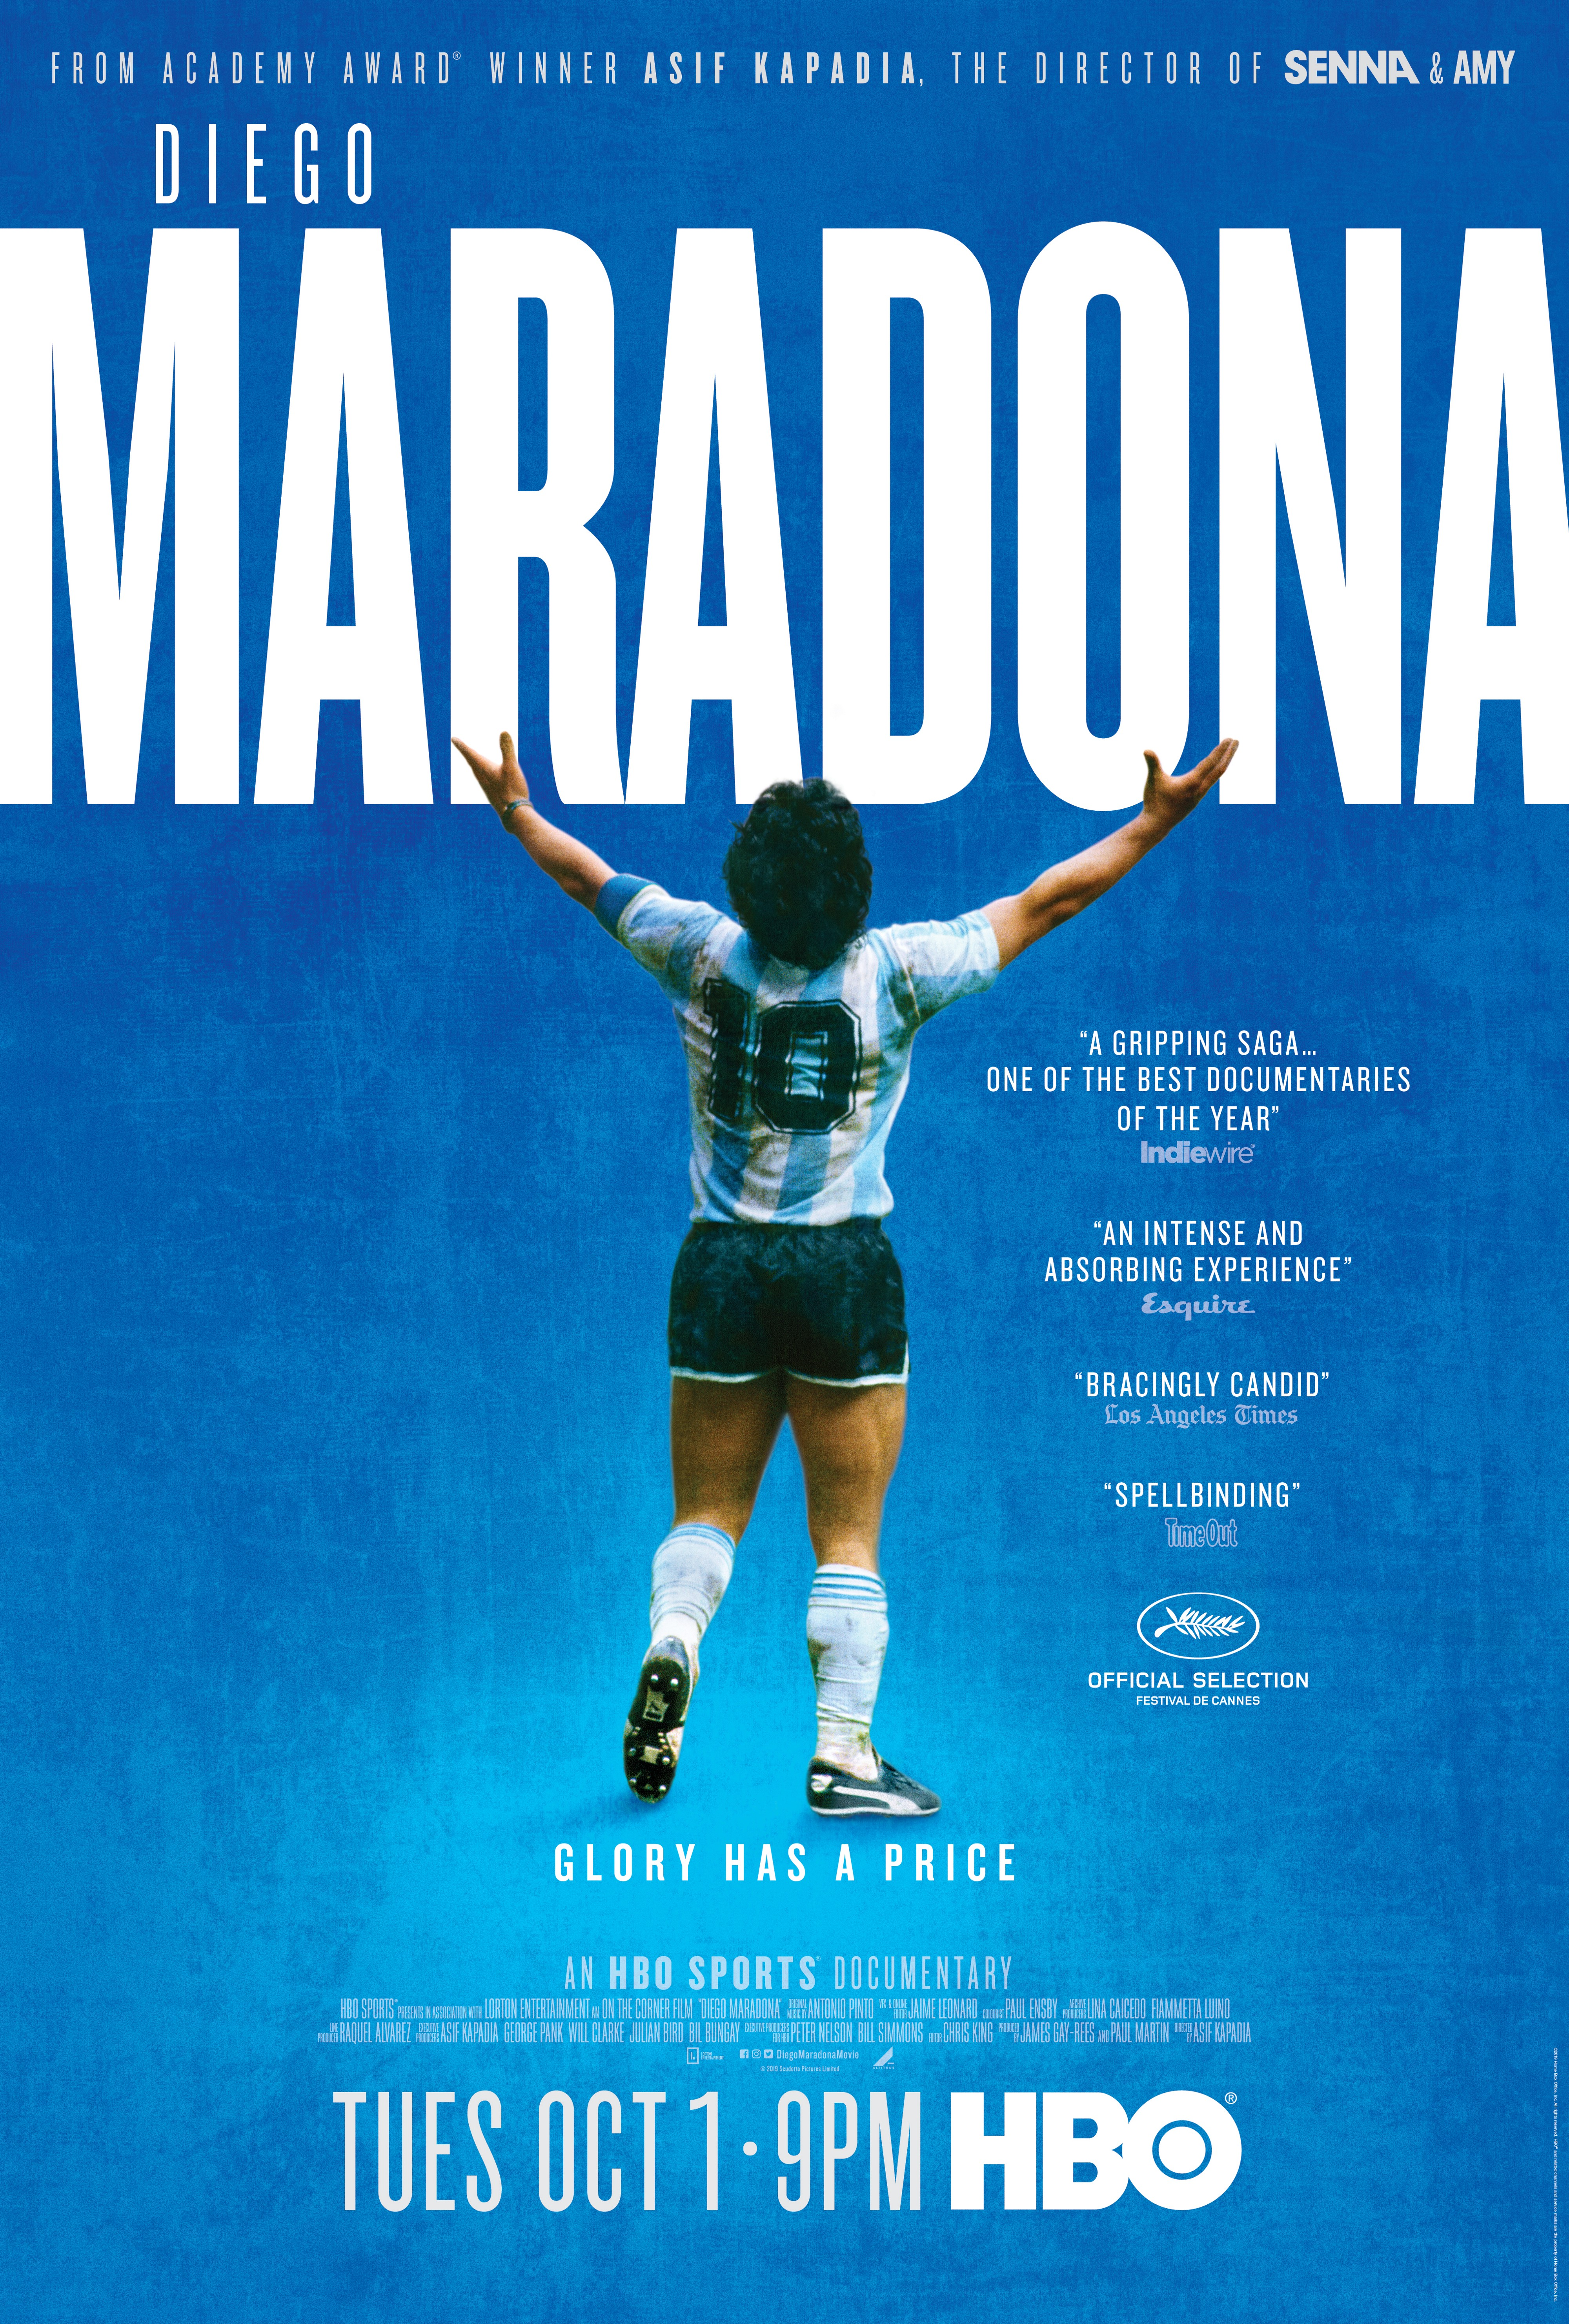 HBO Sports Documentary DIEGO MARADONA, the Extraordinary